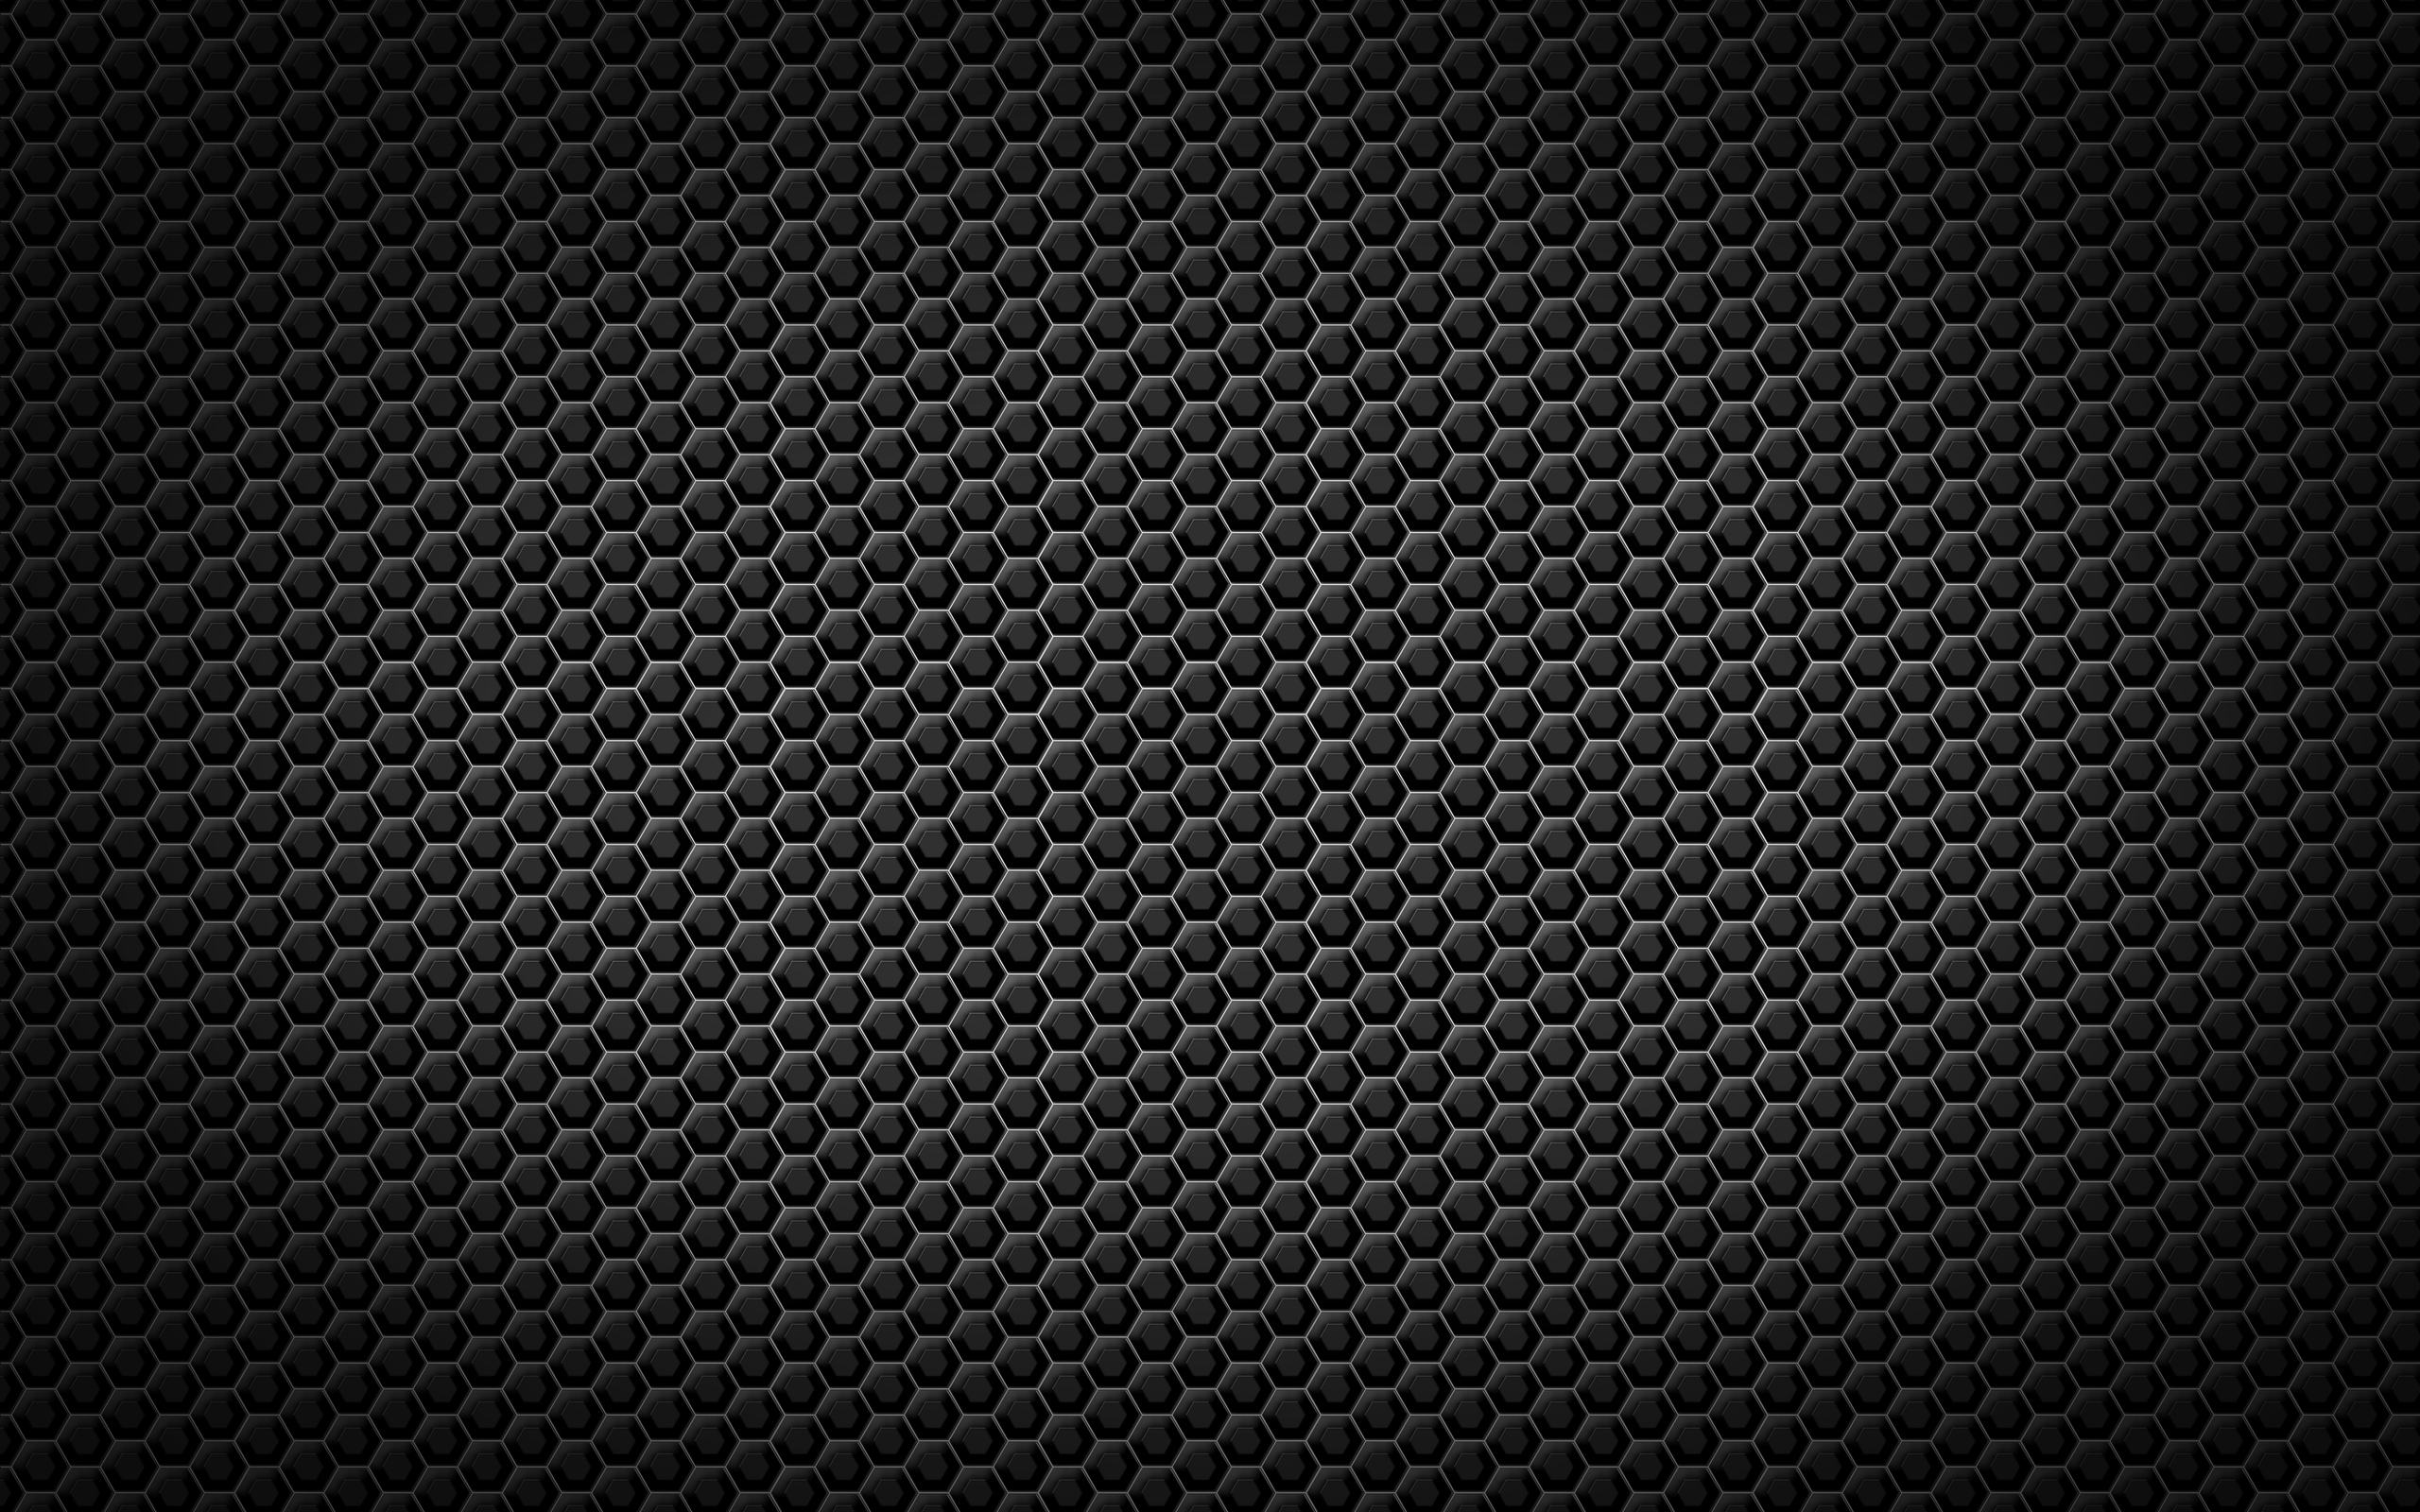 Cool black background wallpaper wallpapersafari for Dark pattern background